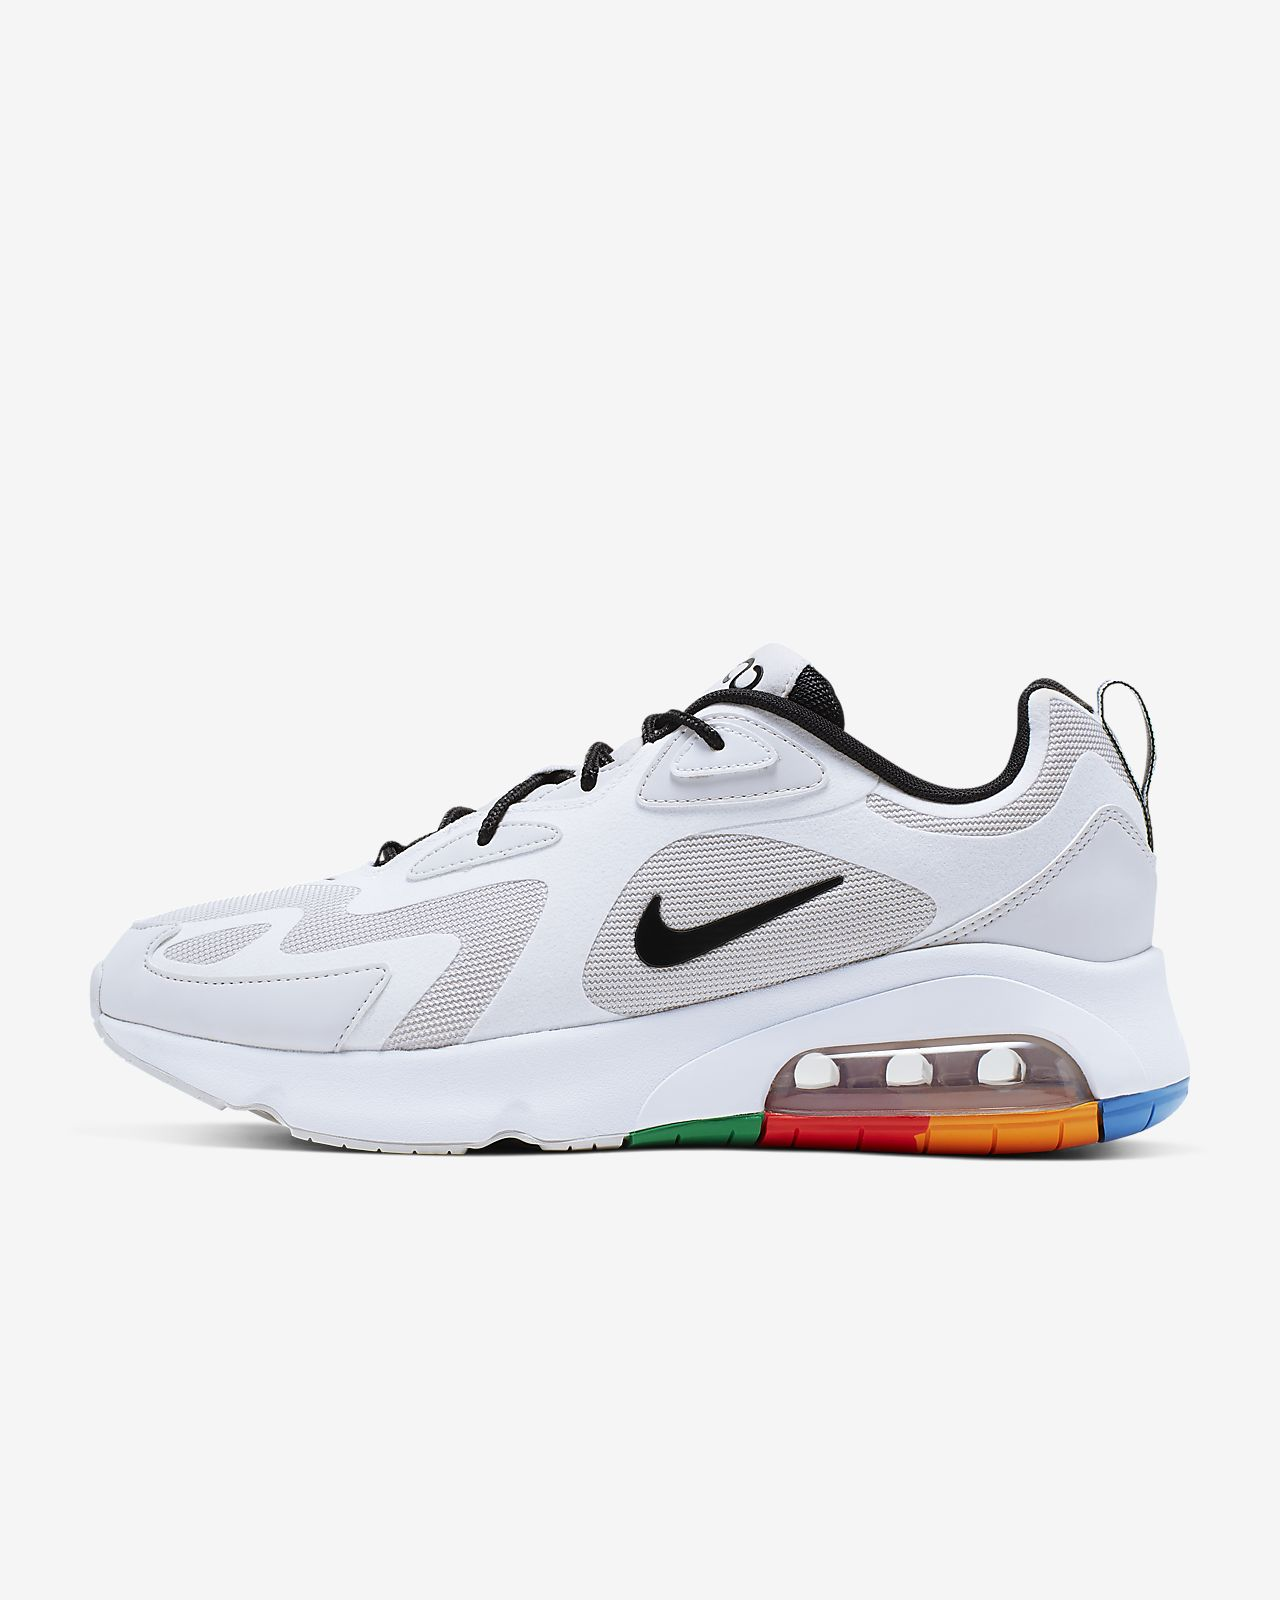 Nike Air Max 200 (1996 World Stage) Herrenschuh